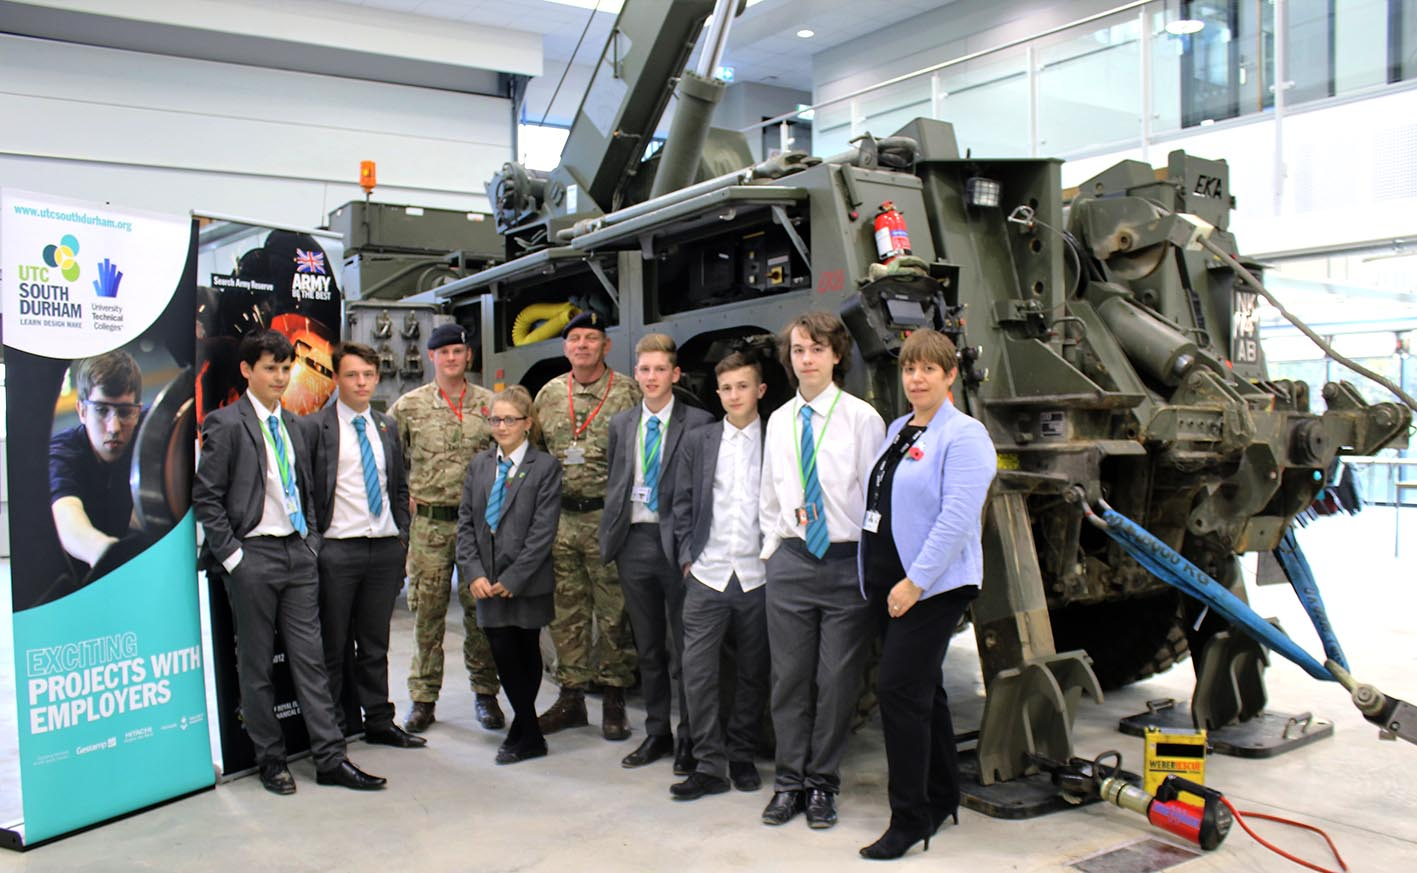 Aycliffe UTC Students View Career Options